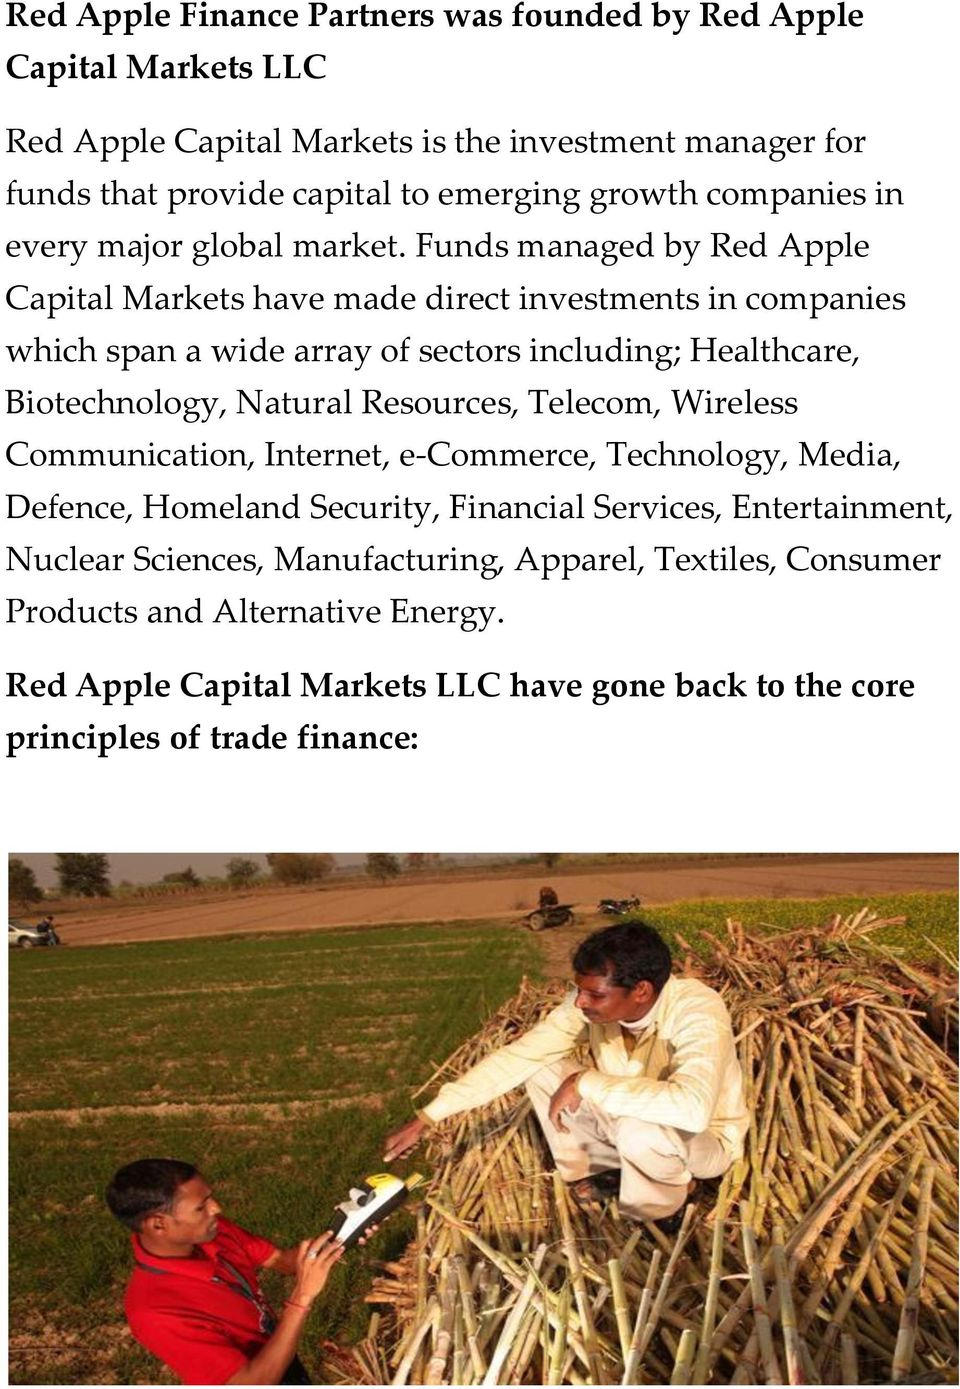 Funds managed by Red Apple Capital Markets have made direct investments in companies which span a wide array of sectors including; Healthcare, Biotechnology, Natural Resources,